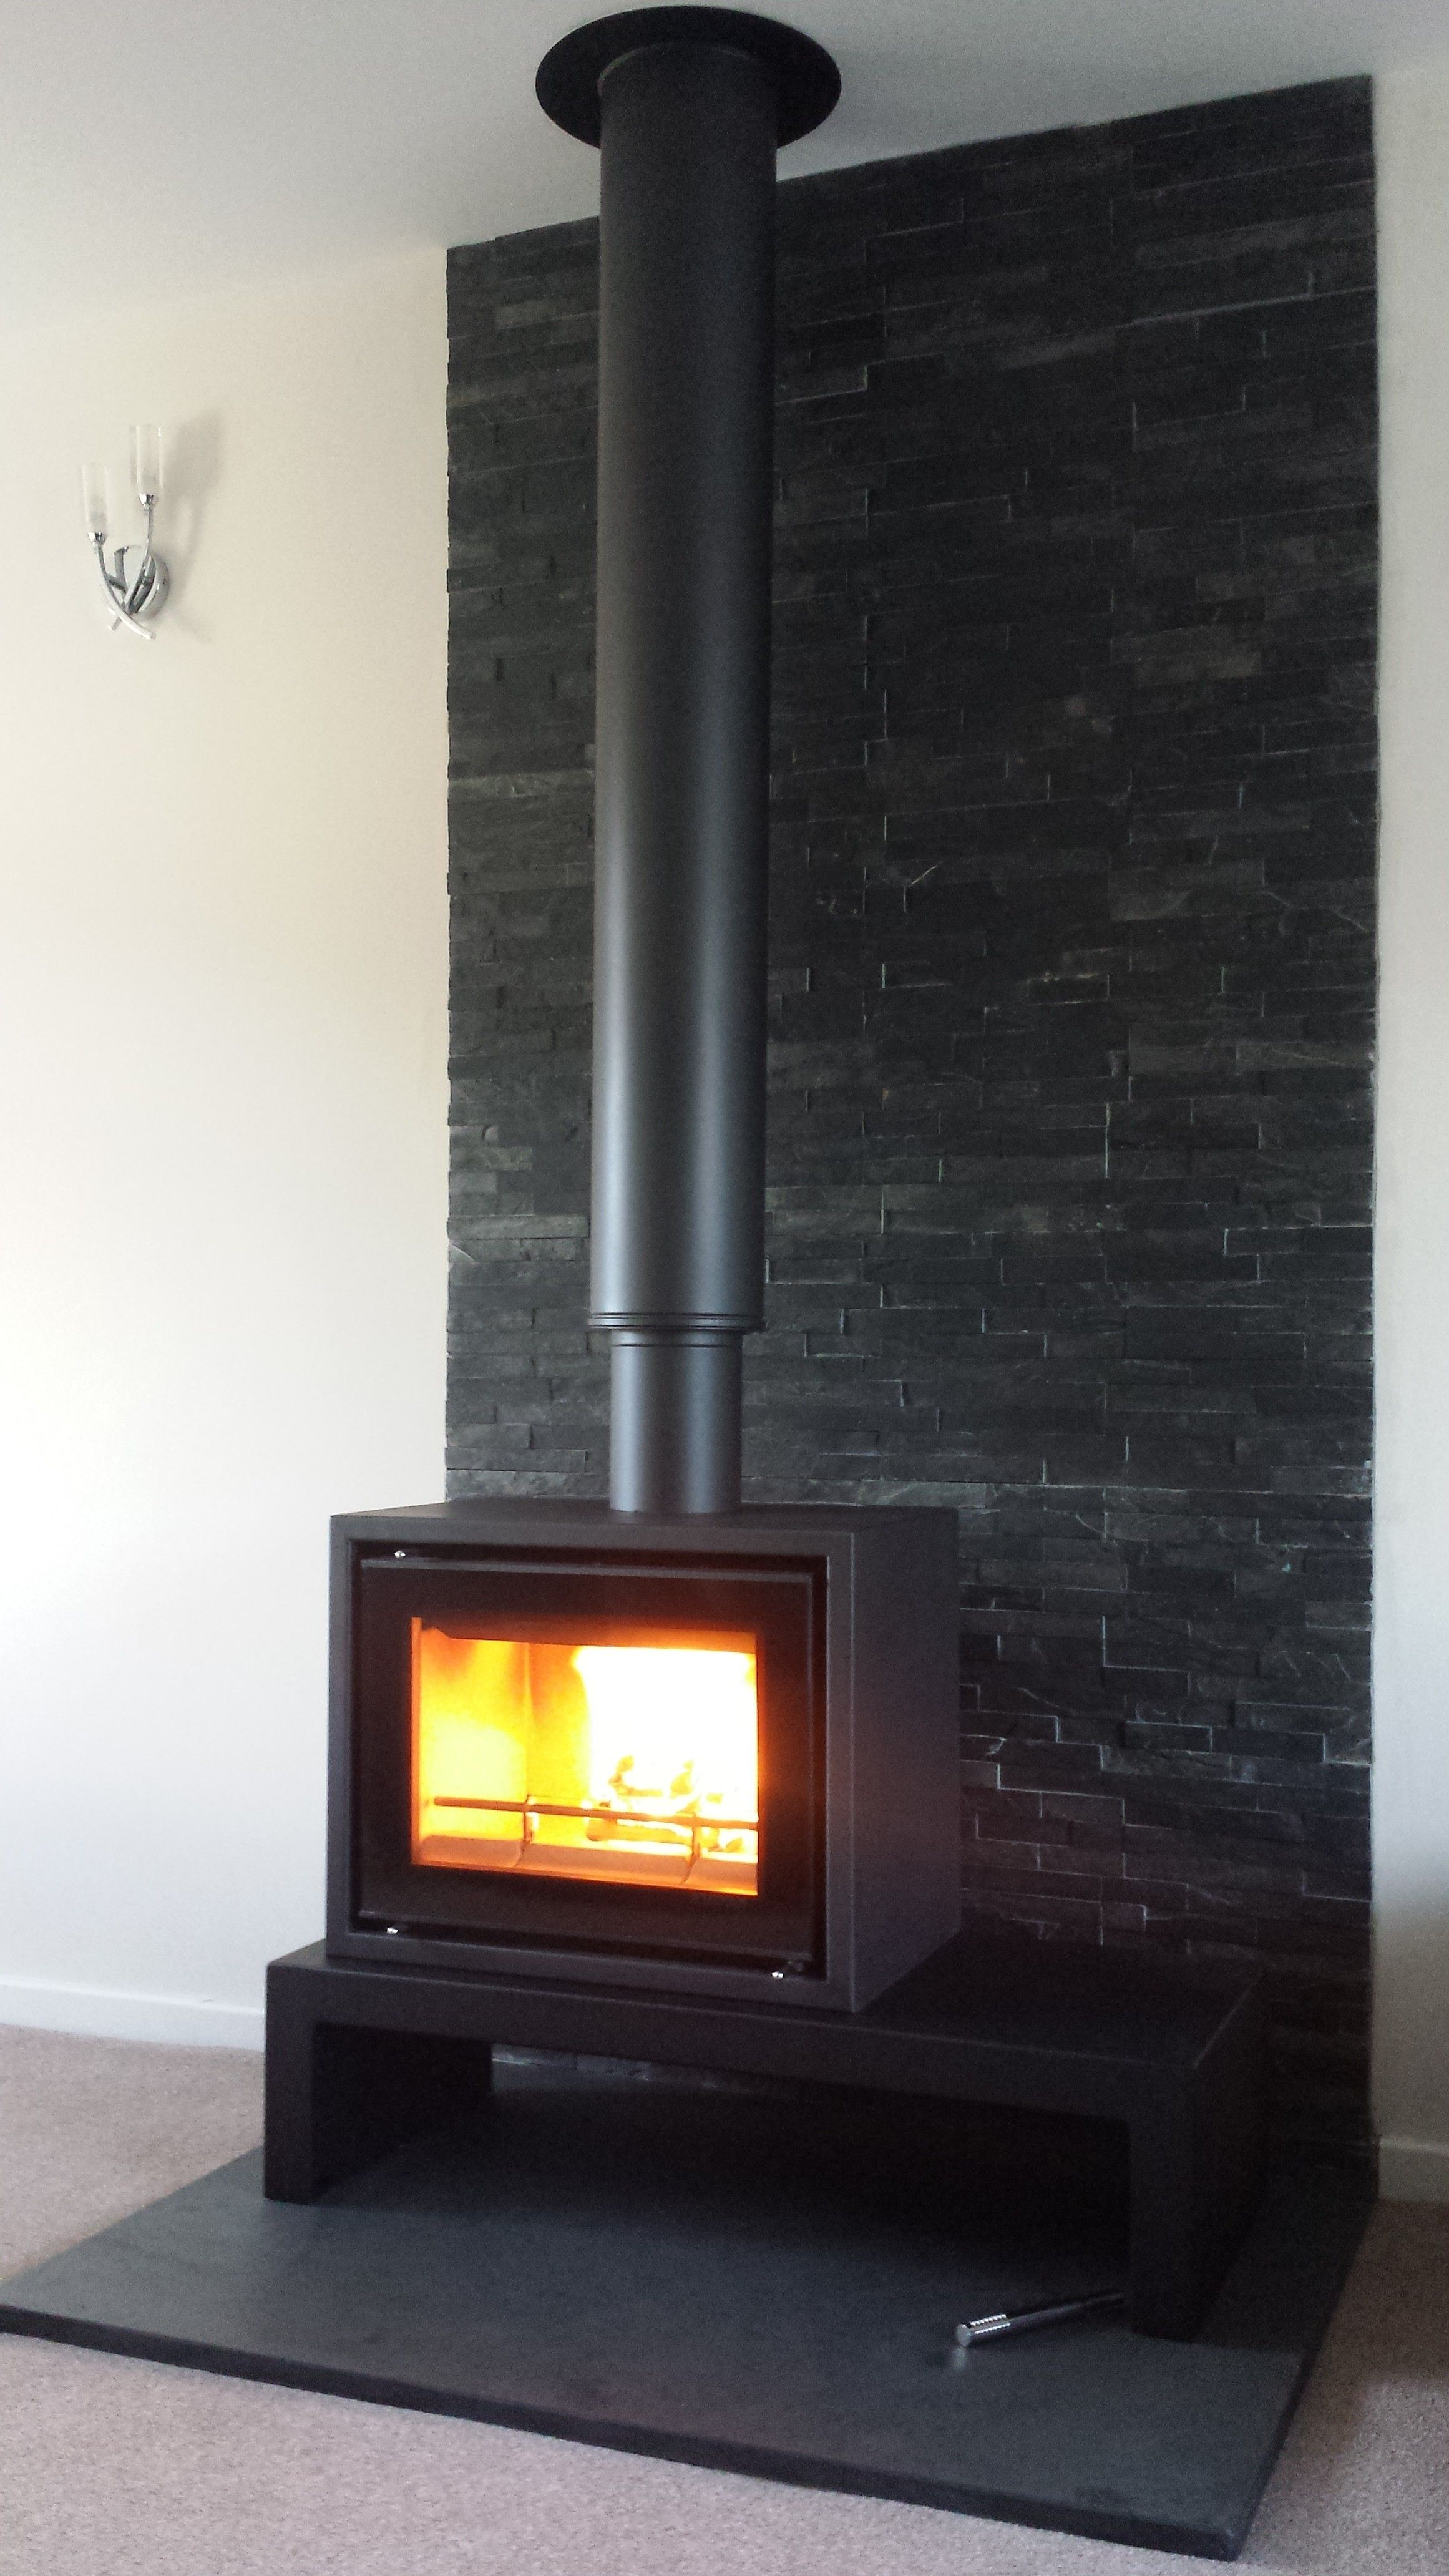 Inserto Camino Jotul C 24 Stovax Studio On Bench With Split Faced Tiles Freestanding